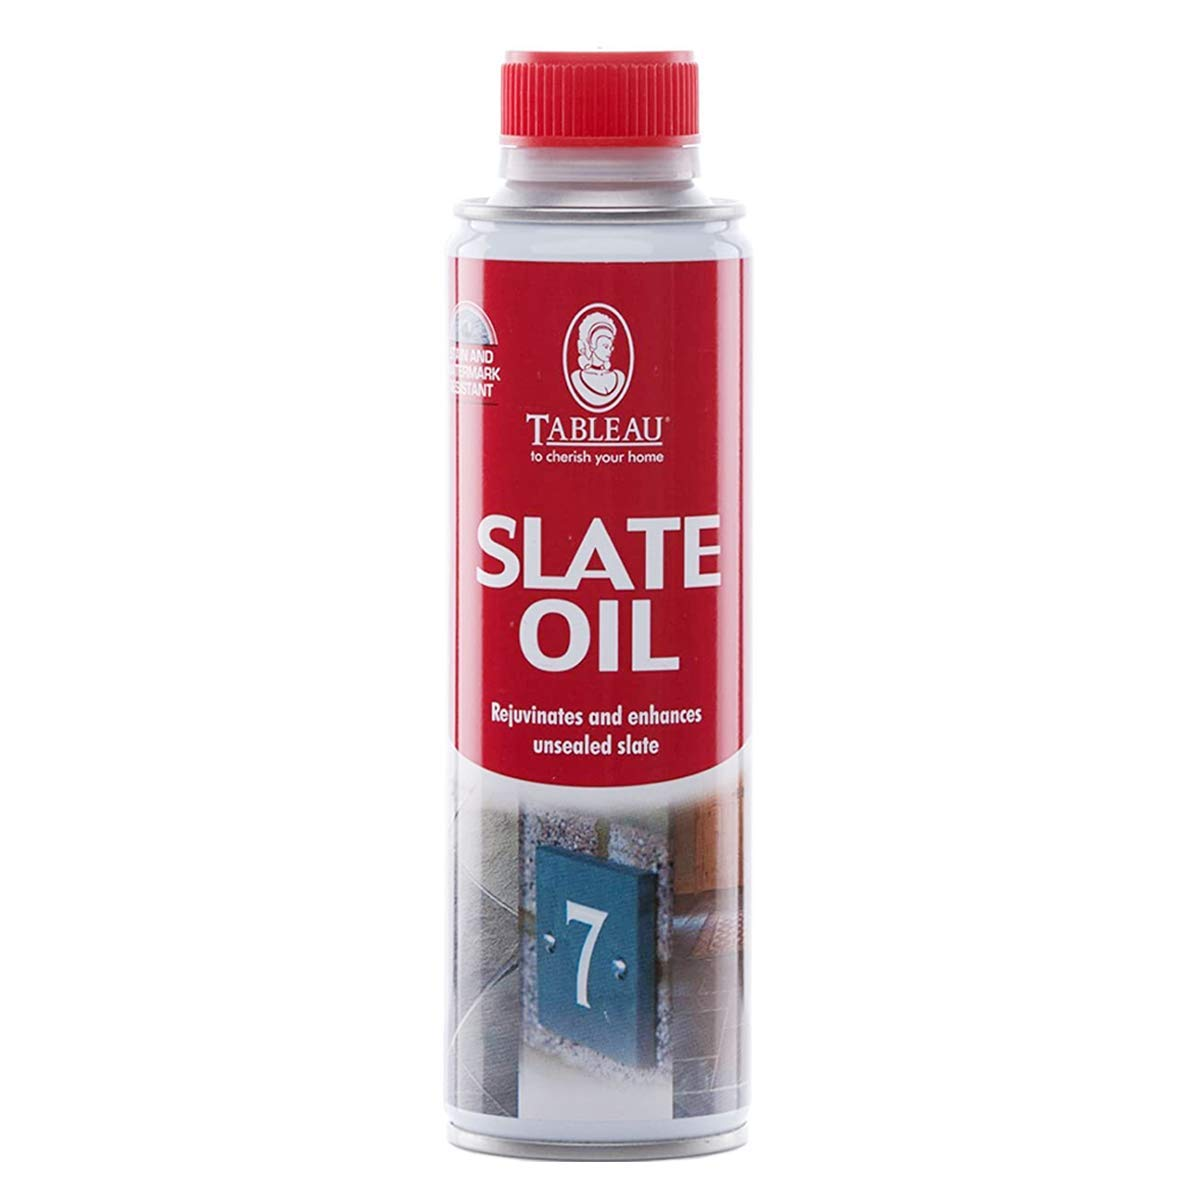 Tableau Slate Oil, 250ml - Rejuvenating Oil for Use on Any Unsealed Slate to Quickly Restore Natural Beauty, Clear